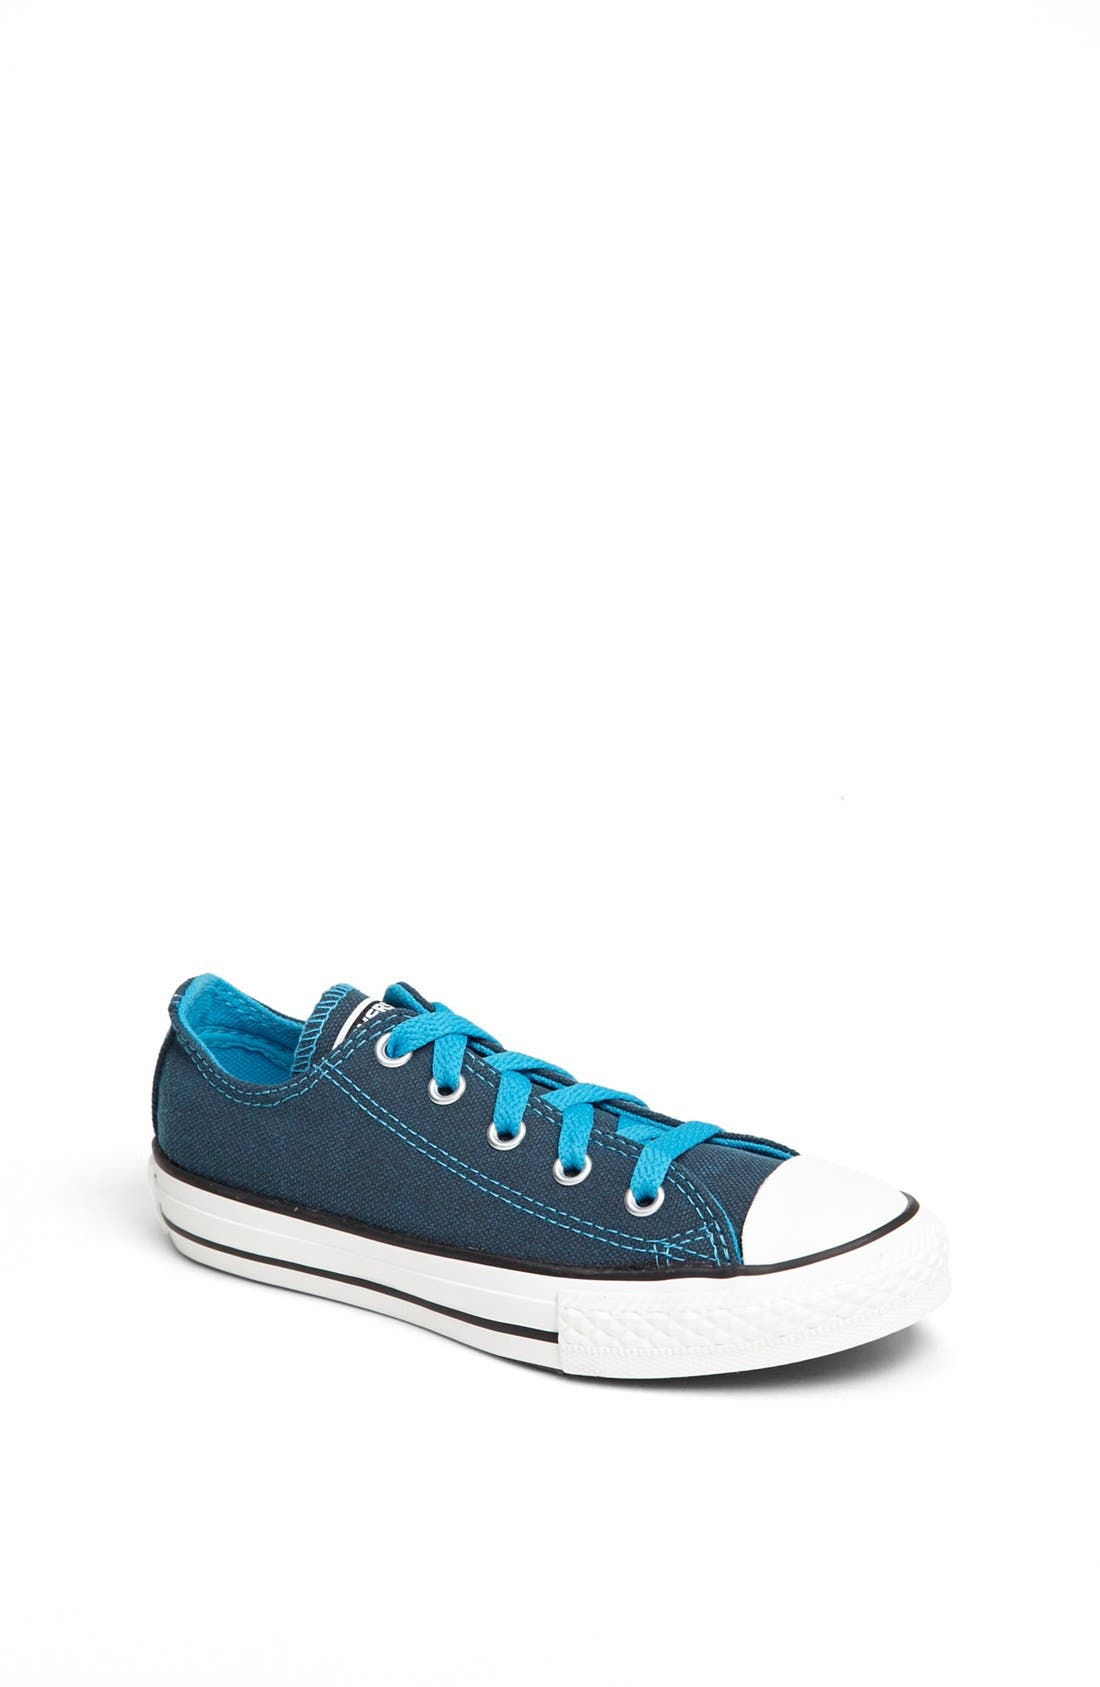 Main Image - Converse Chuck Taylor® All Star® Low Top Sneaker (Toddler & Little Kid)